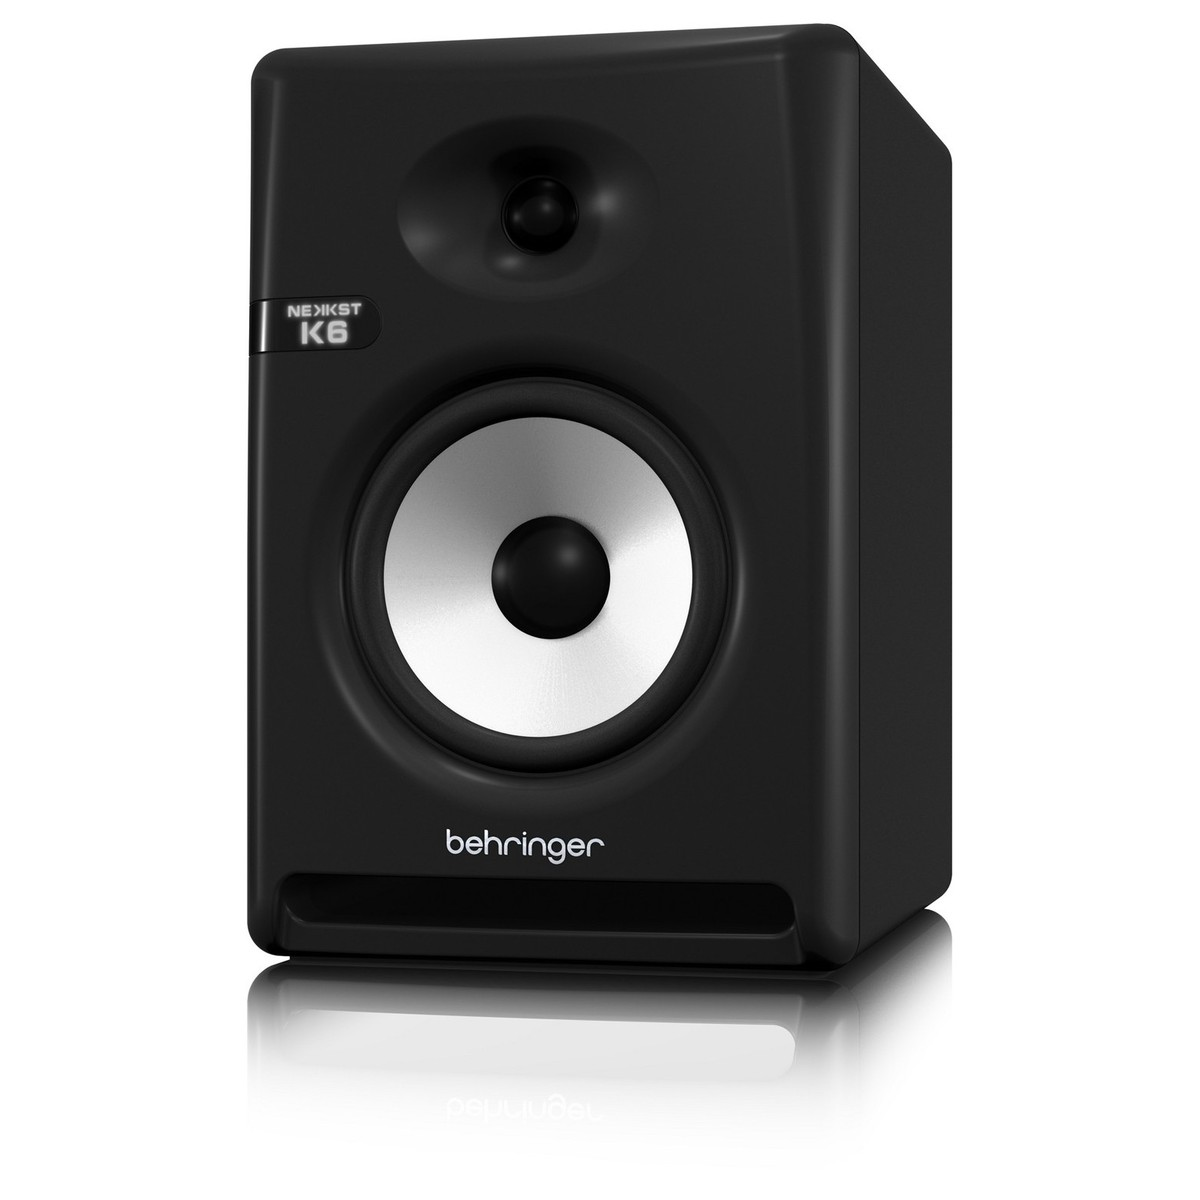 behringer k6 6 5 powered studio monitor music machine musical instruments nz guitars nz. Black Bedroom Furniture Sets. Home Design Ideas